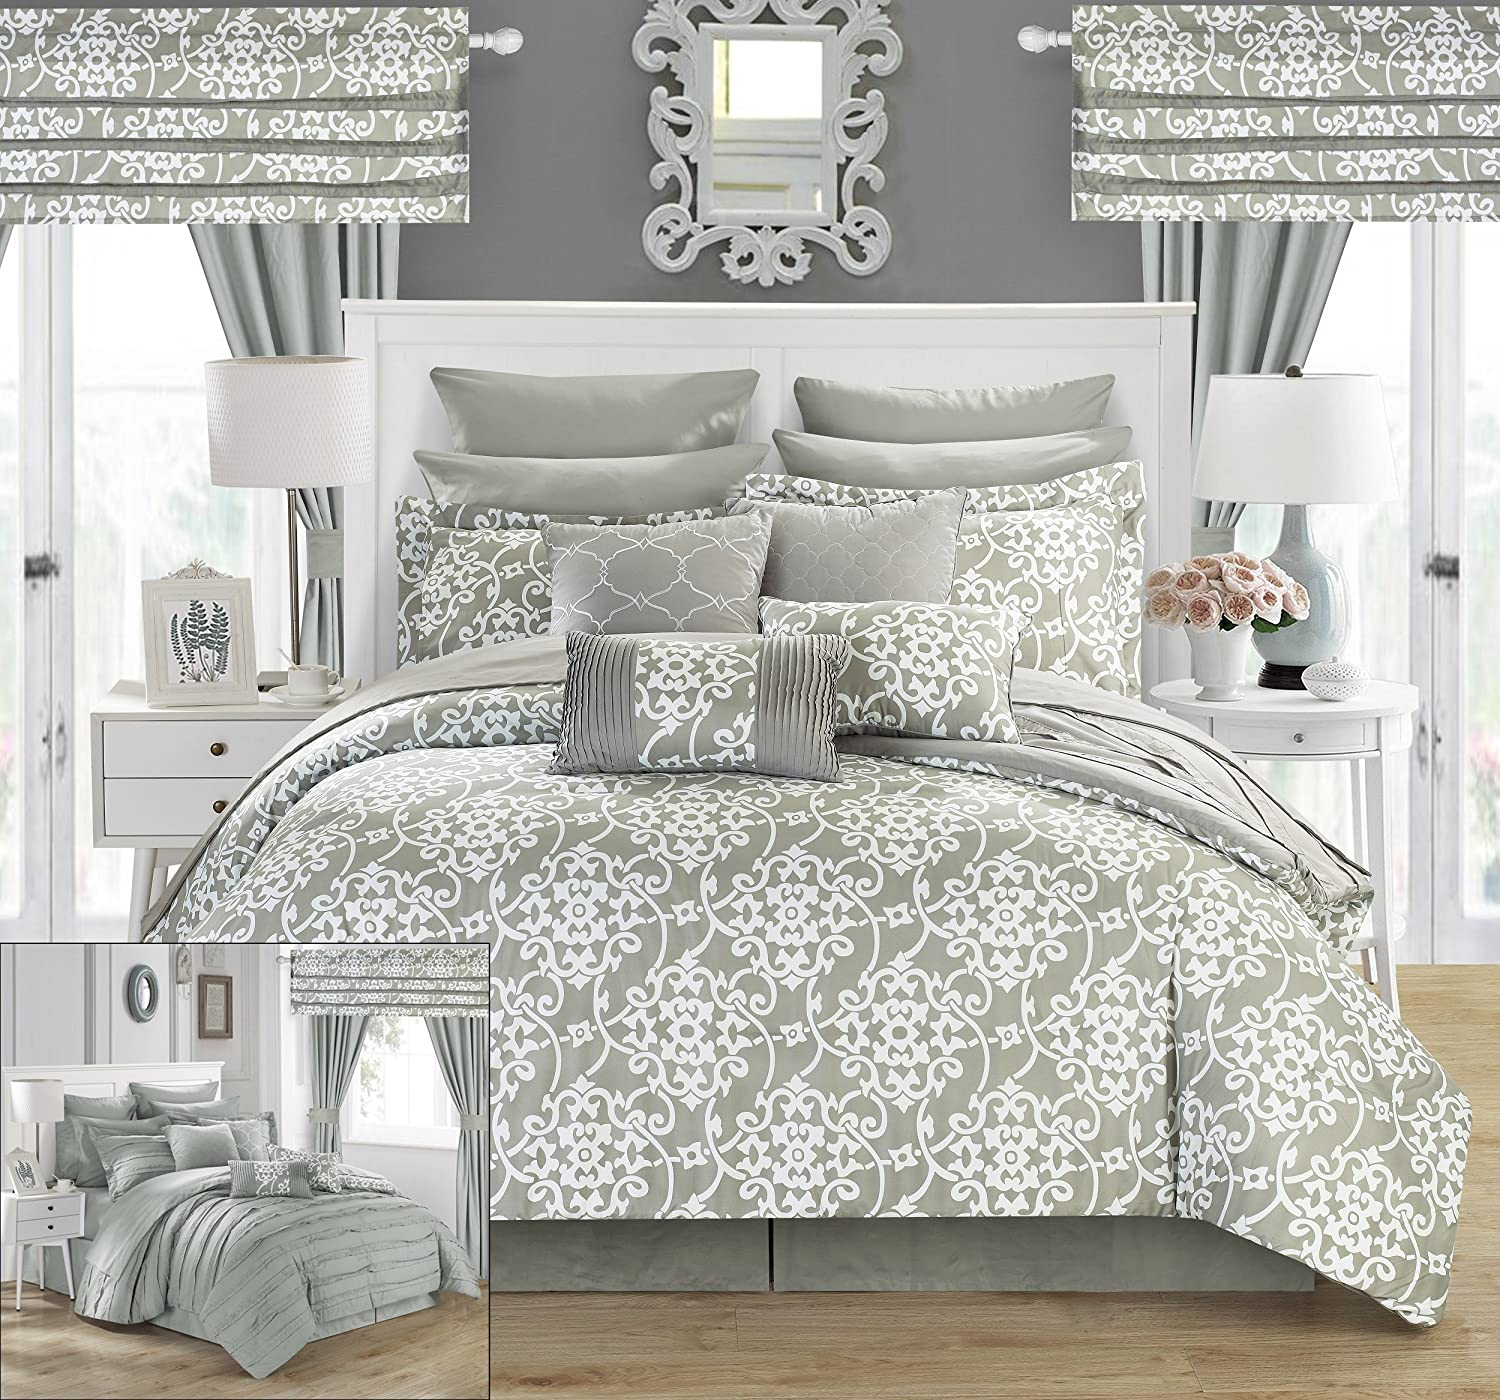 lush king sets ivory serena dp piece comforter set amazon home decor com kitchen